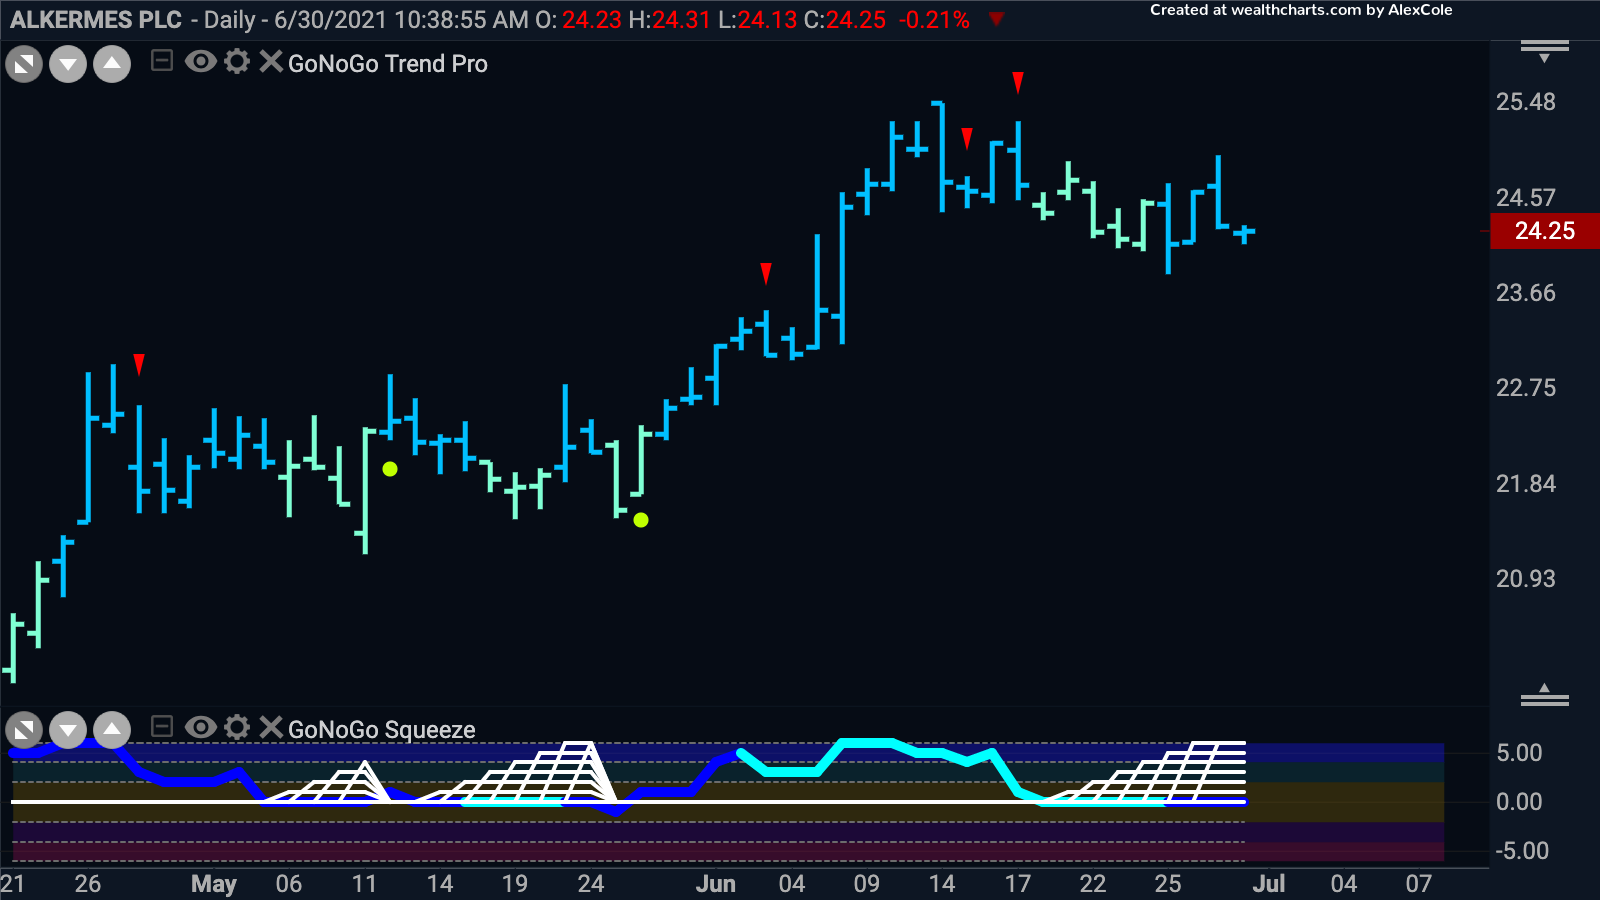 Looking for Alkermes PLC to break out of Squeeze